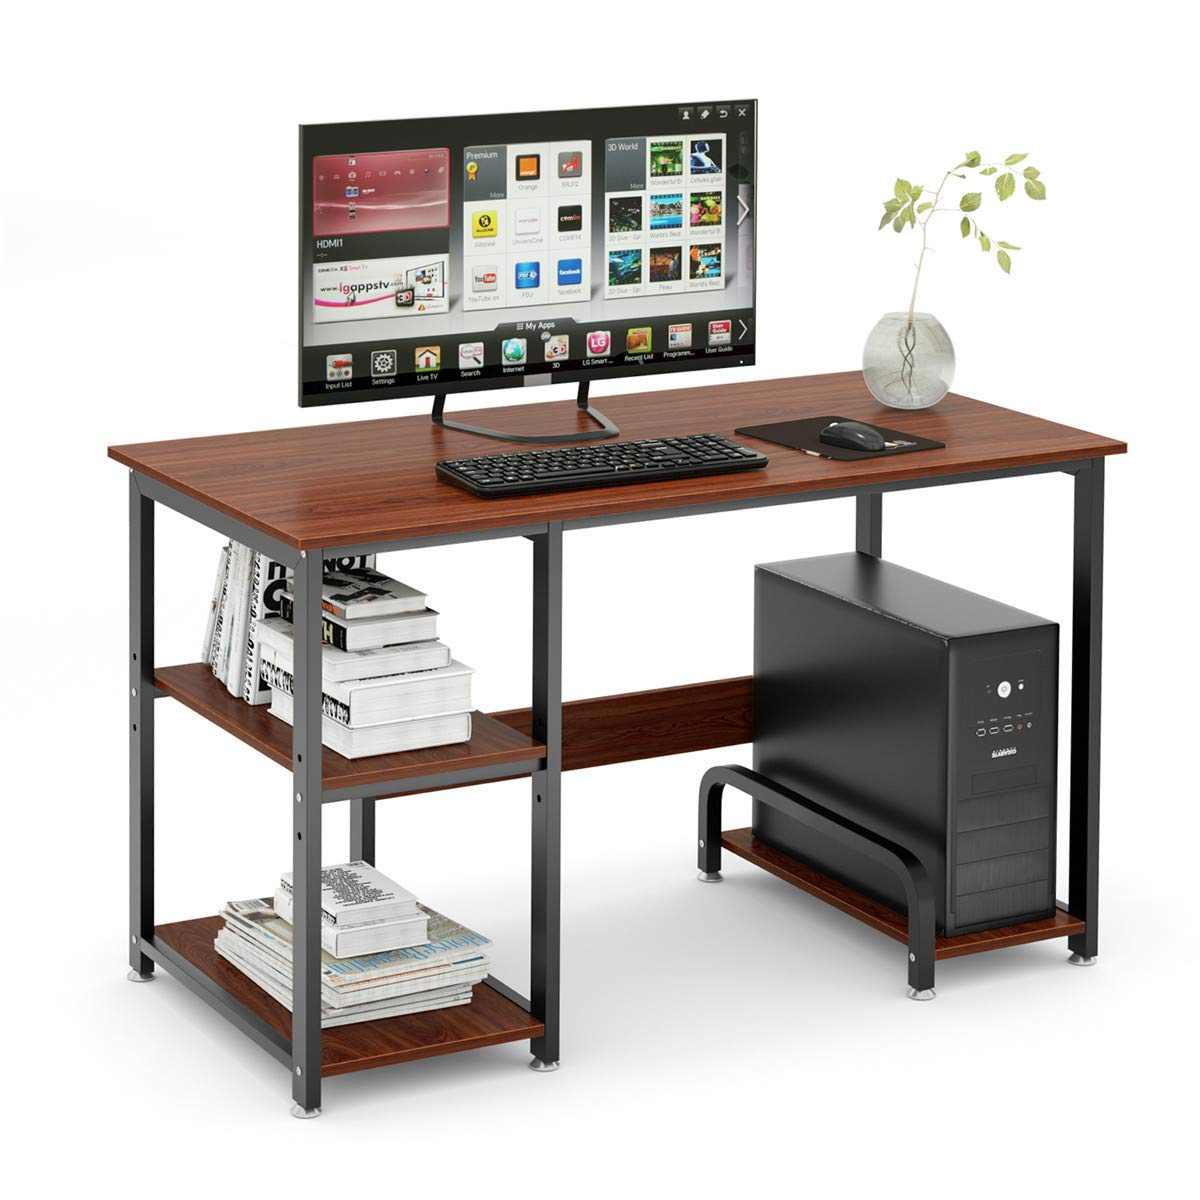 Computer Desk 47 Office Desk with Hutch Gaming Table Writing Study Table Workstation with 2 Storage Bookshelf for Home Office